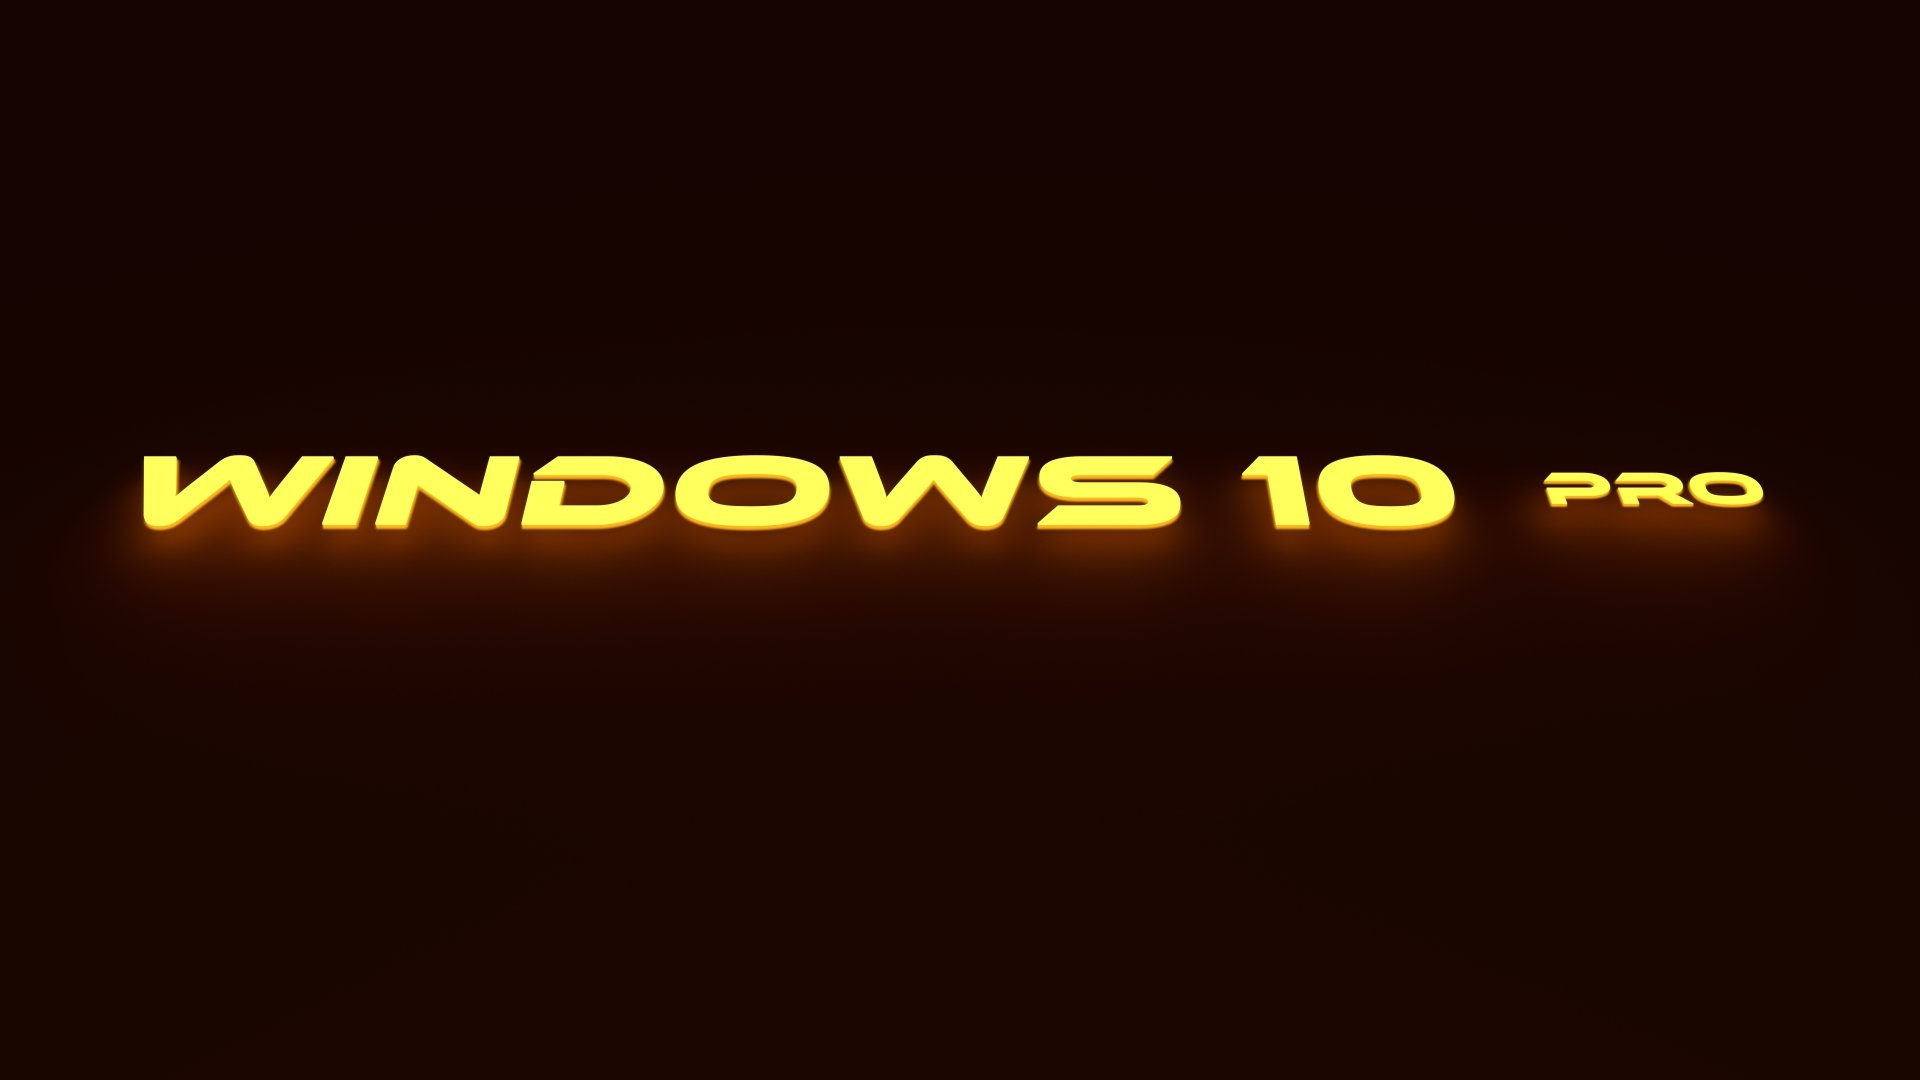 技术 - Windows 10  壁纸